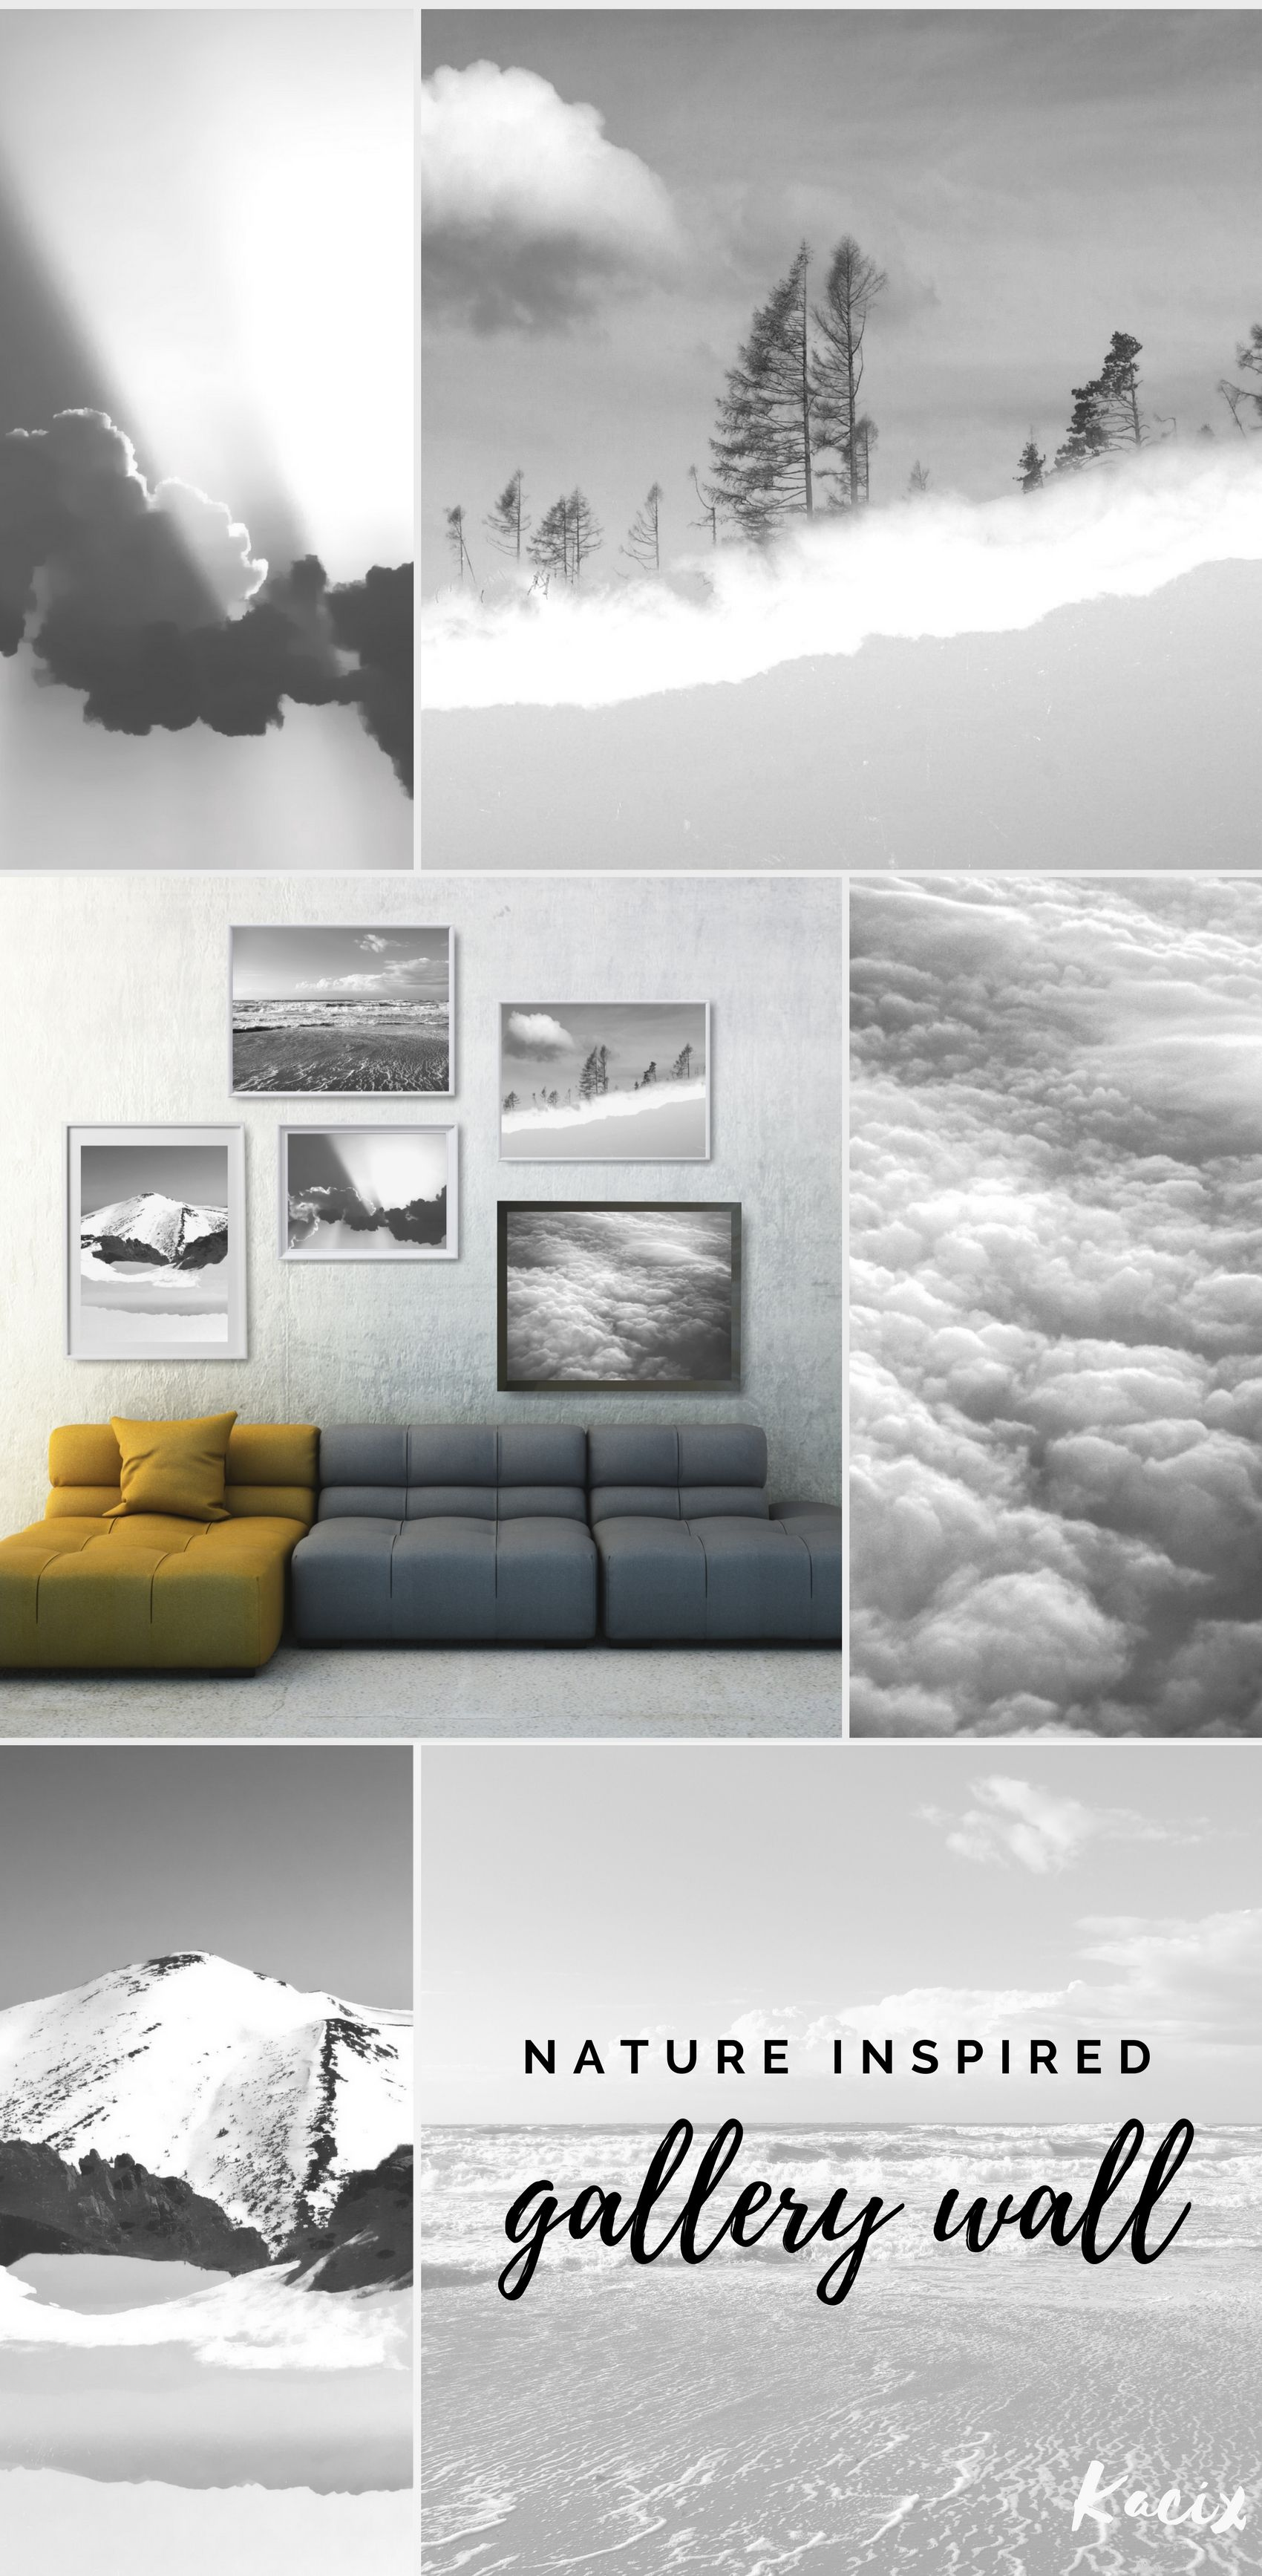 Create a modern photo gallery wall inspired